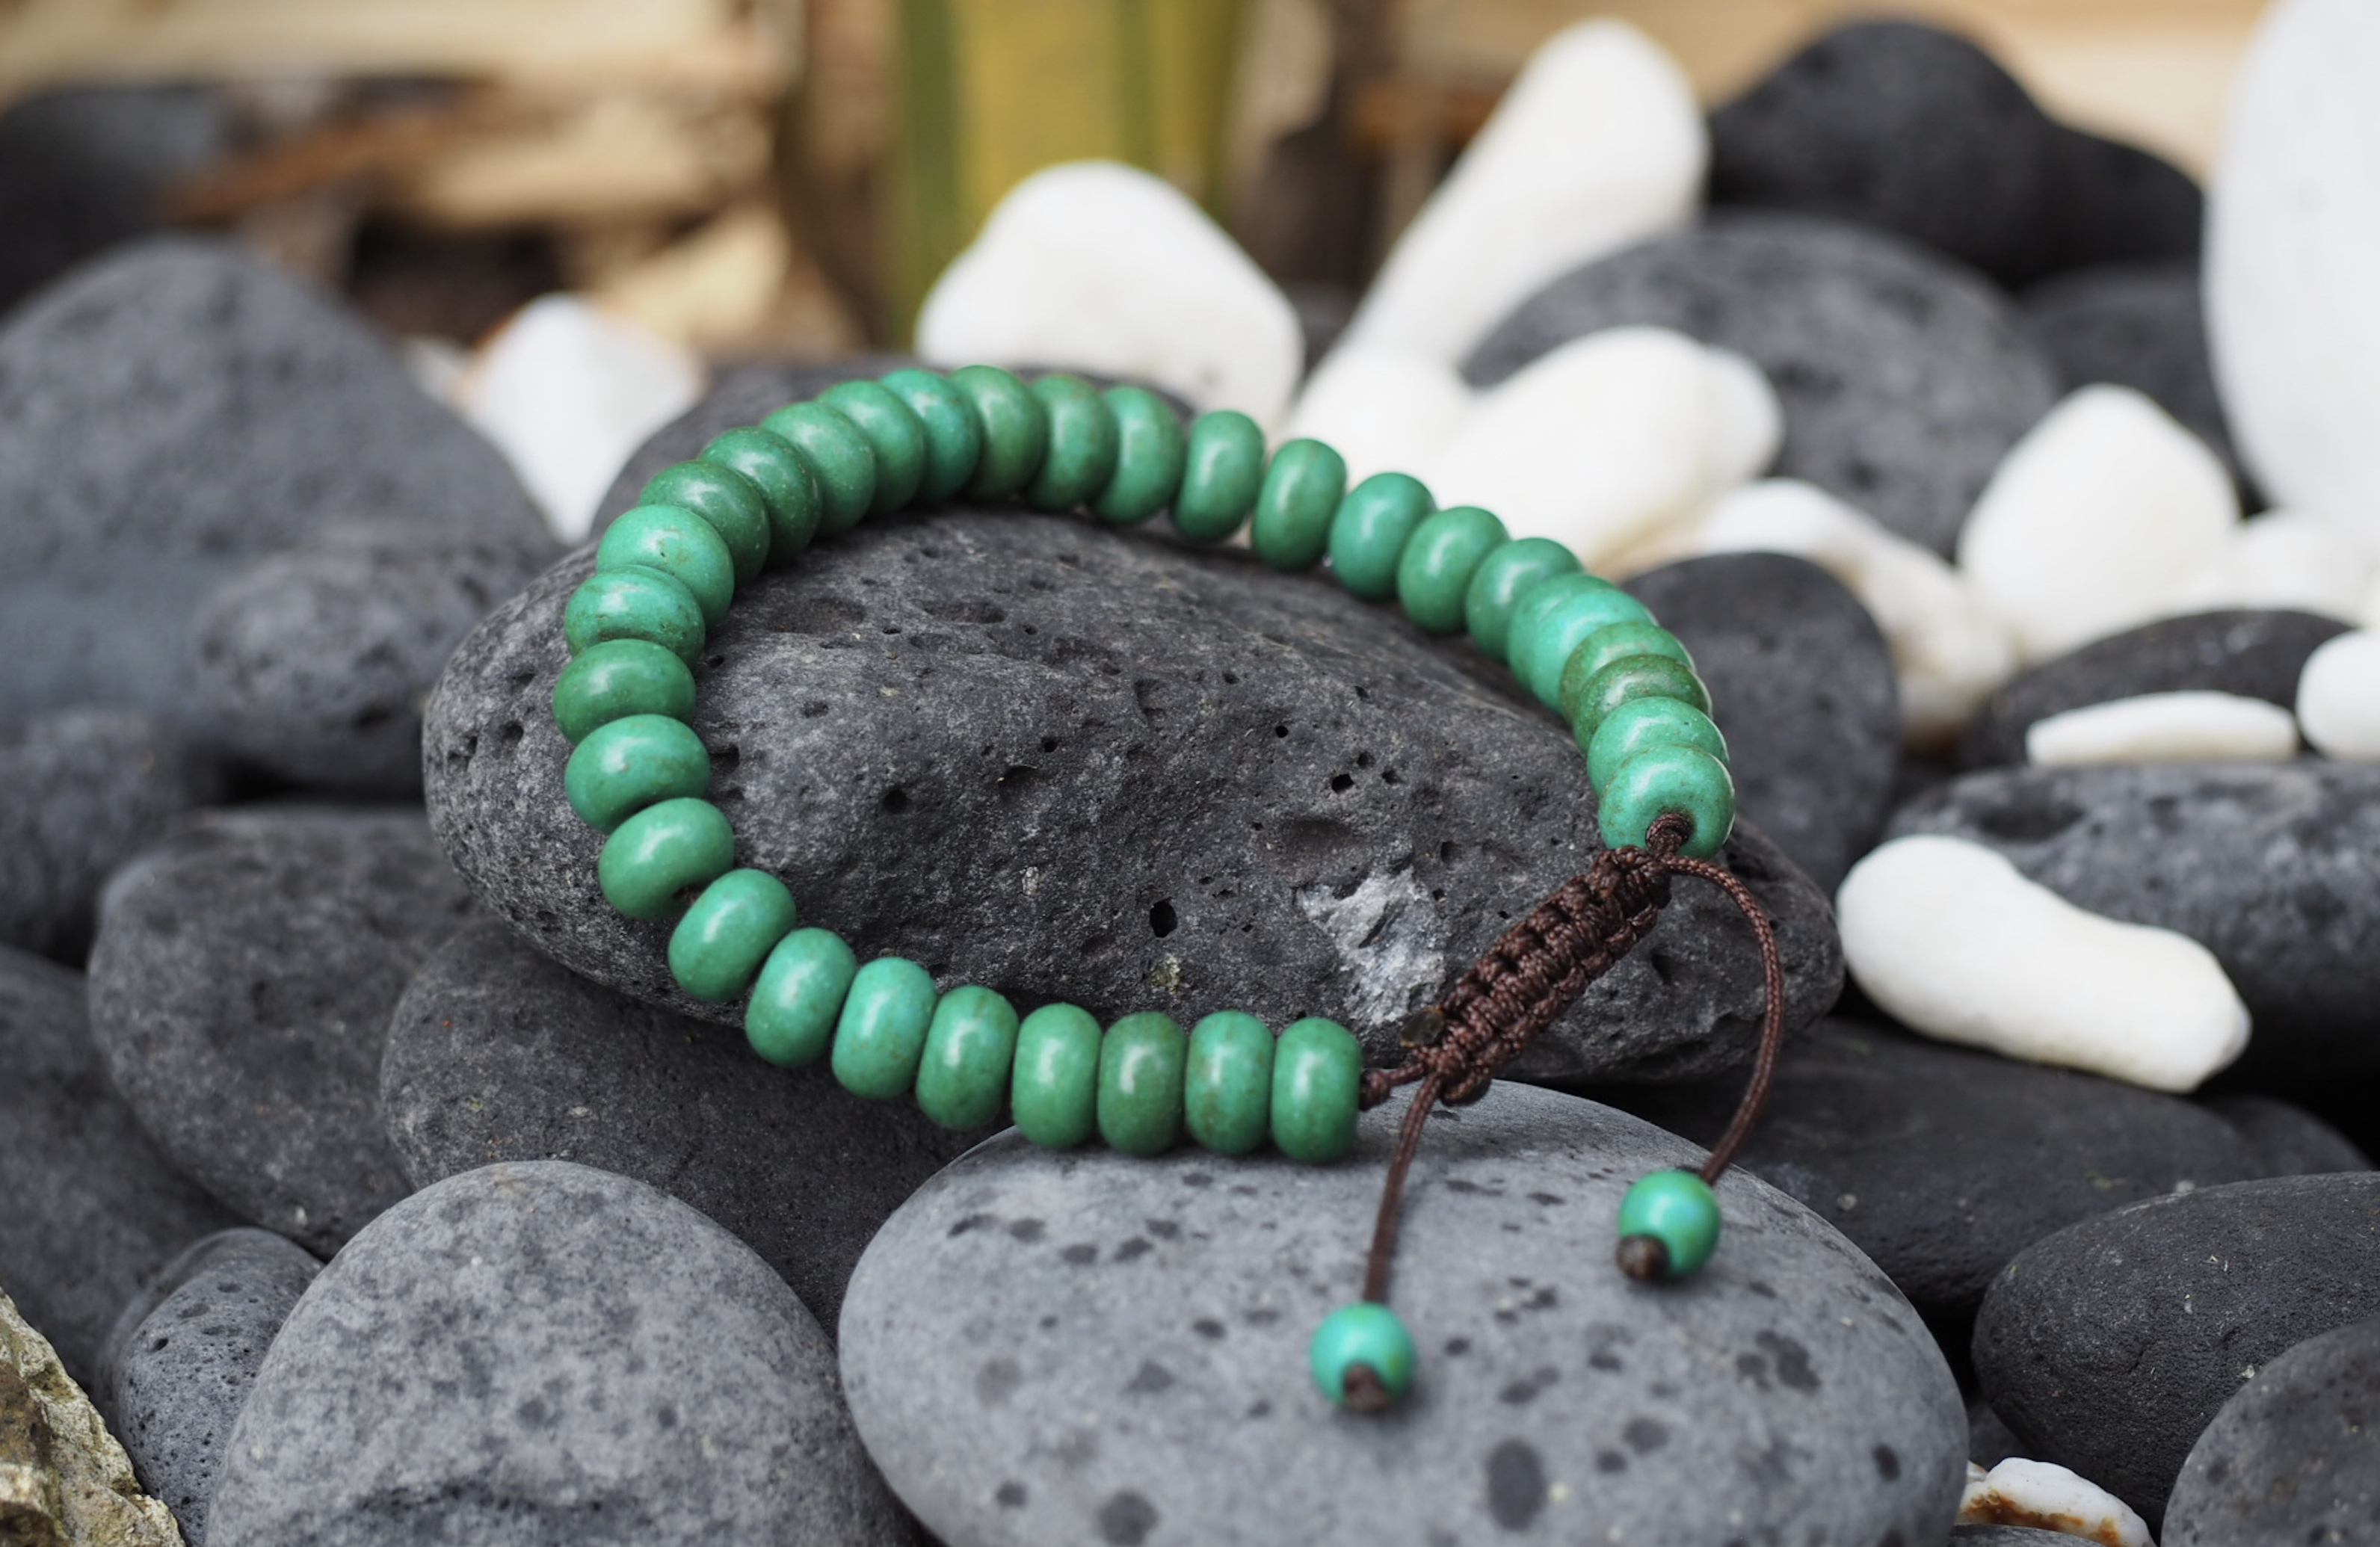 Tibetan Turquoise Wrist Mala/Bracelet for Meditation - Brown String